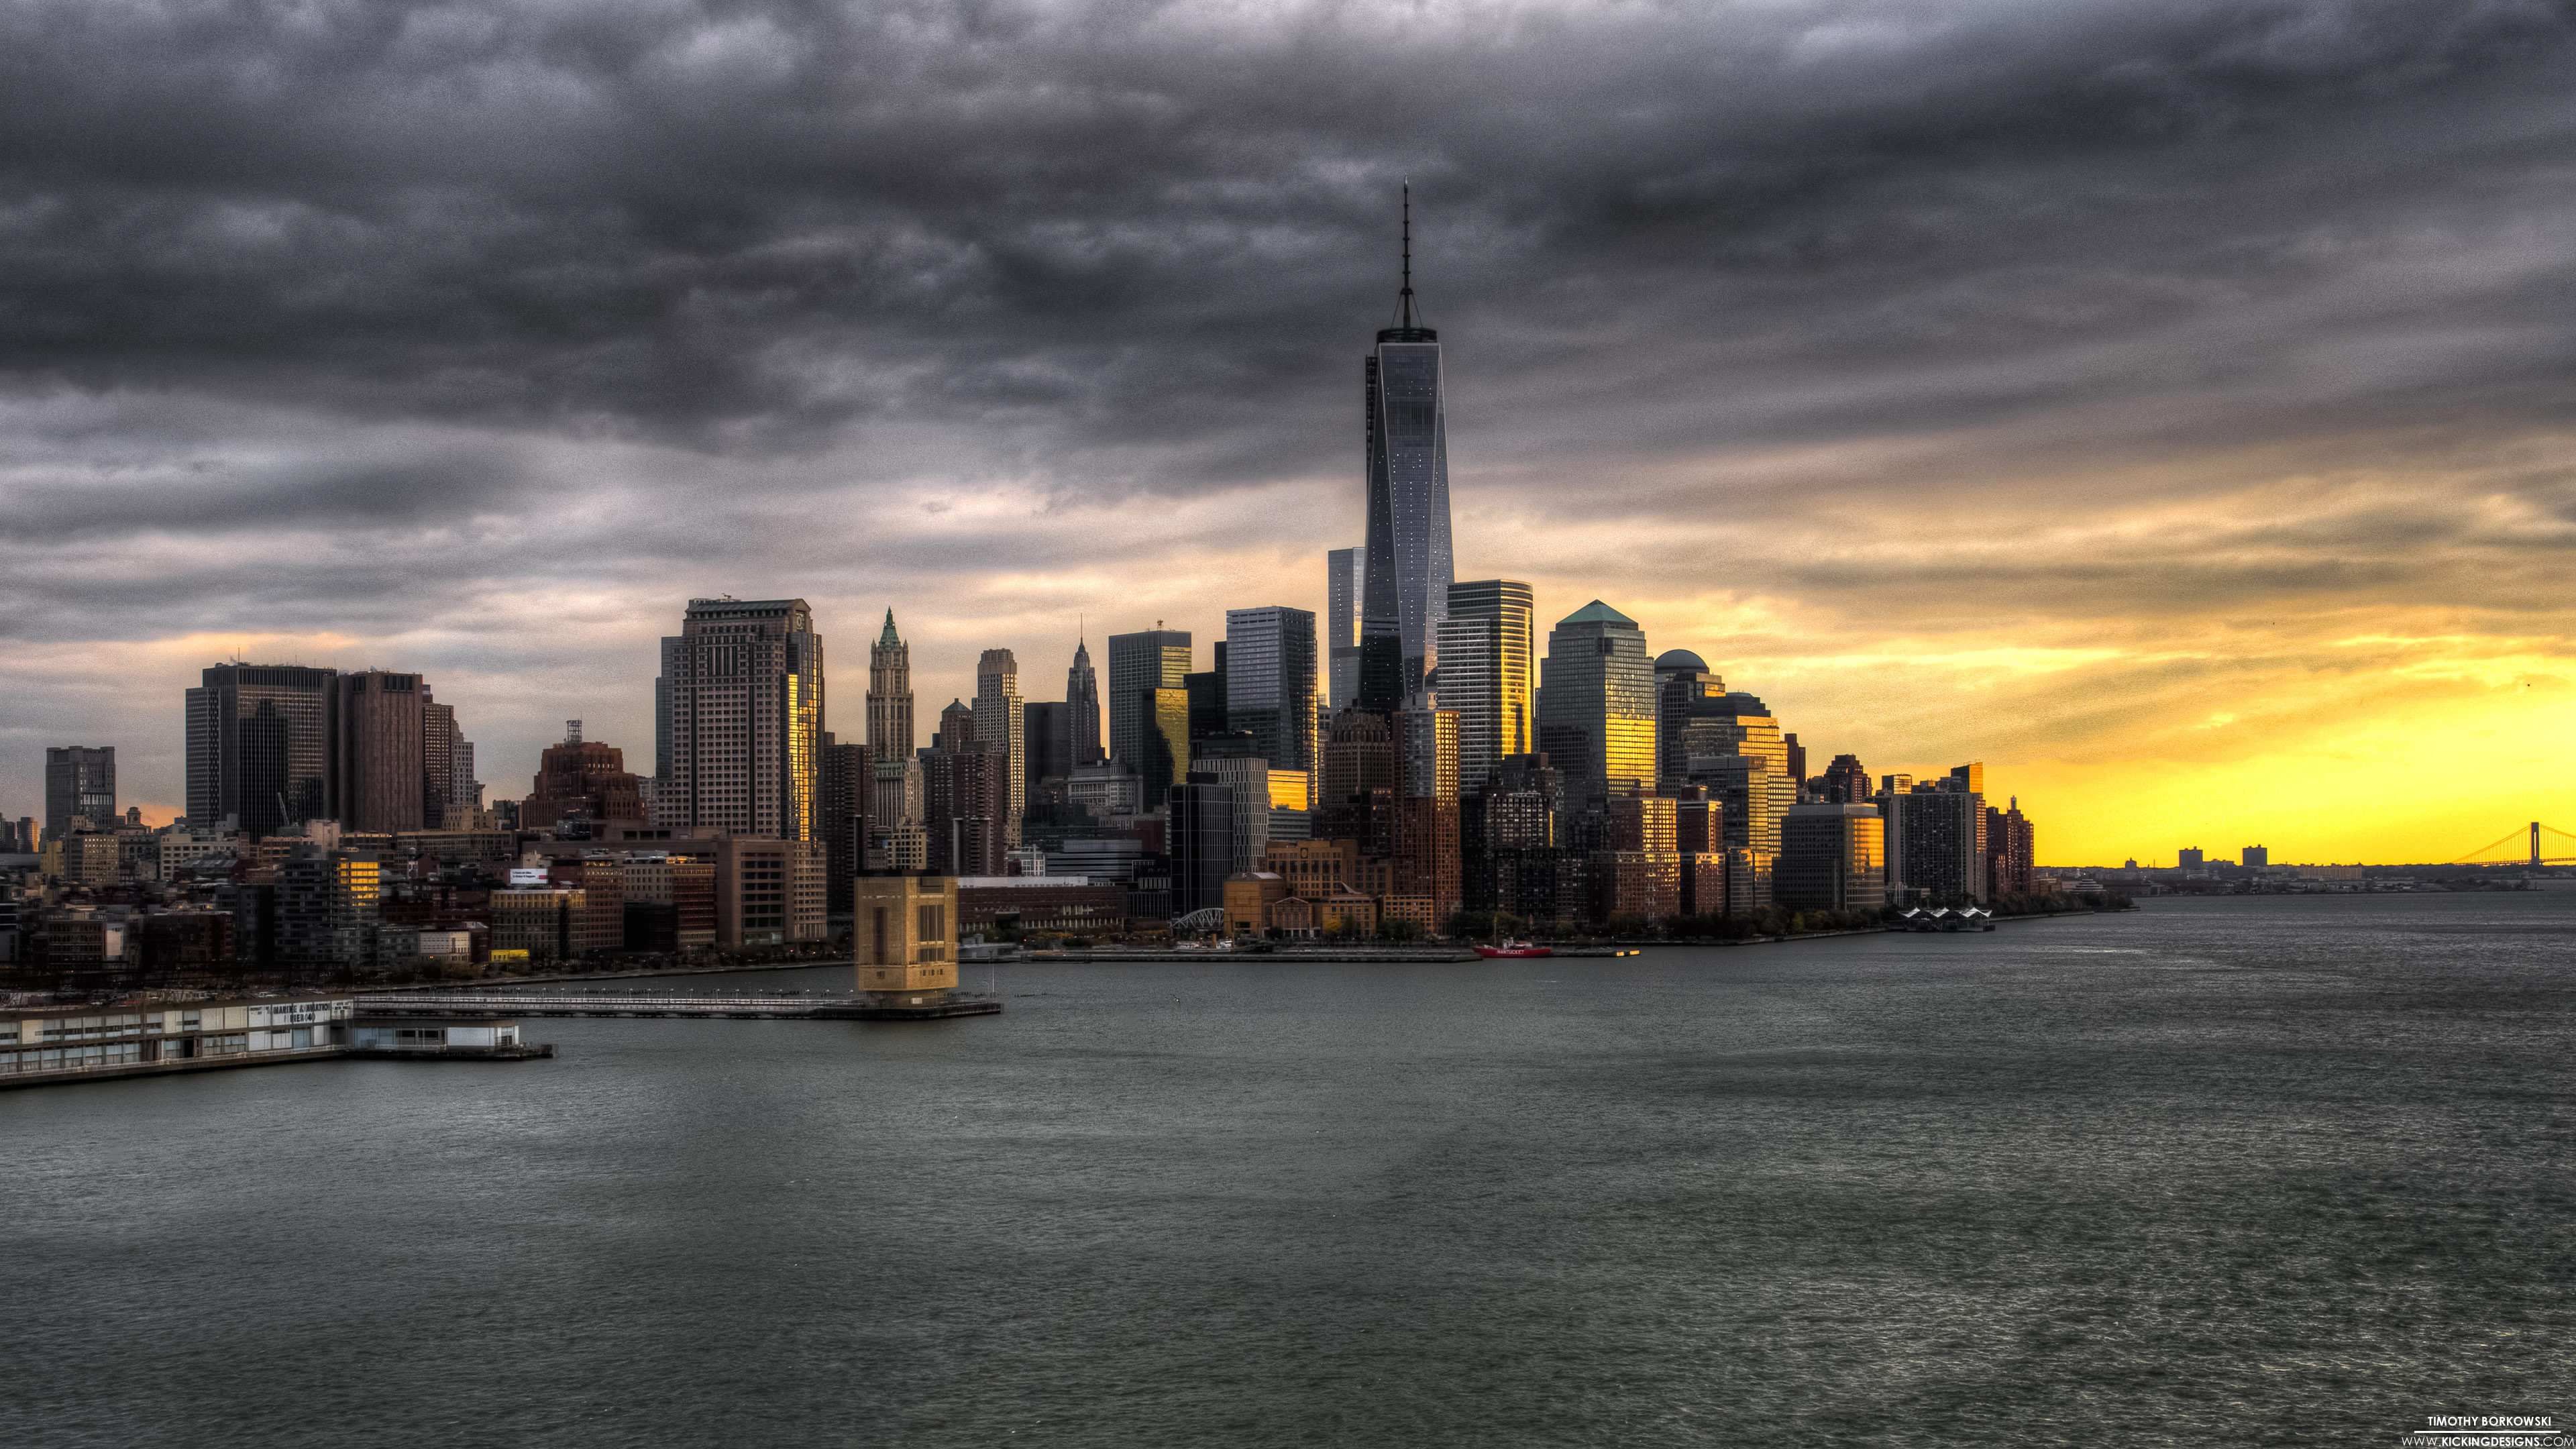 manhattan sunset 11 30 2013 wallpaper background kicking designs background 4k ultra hd